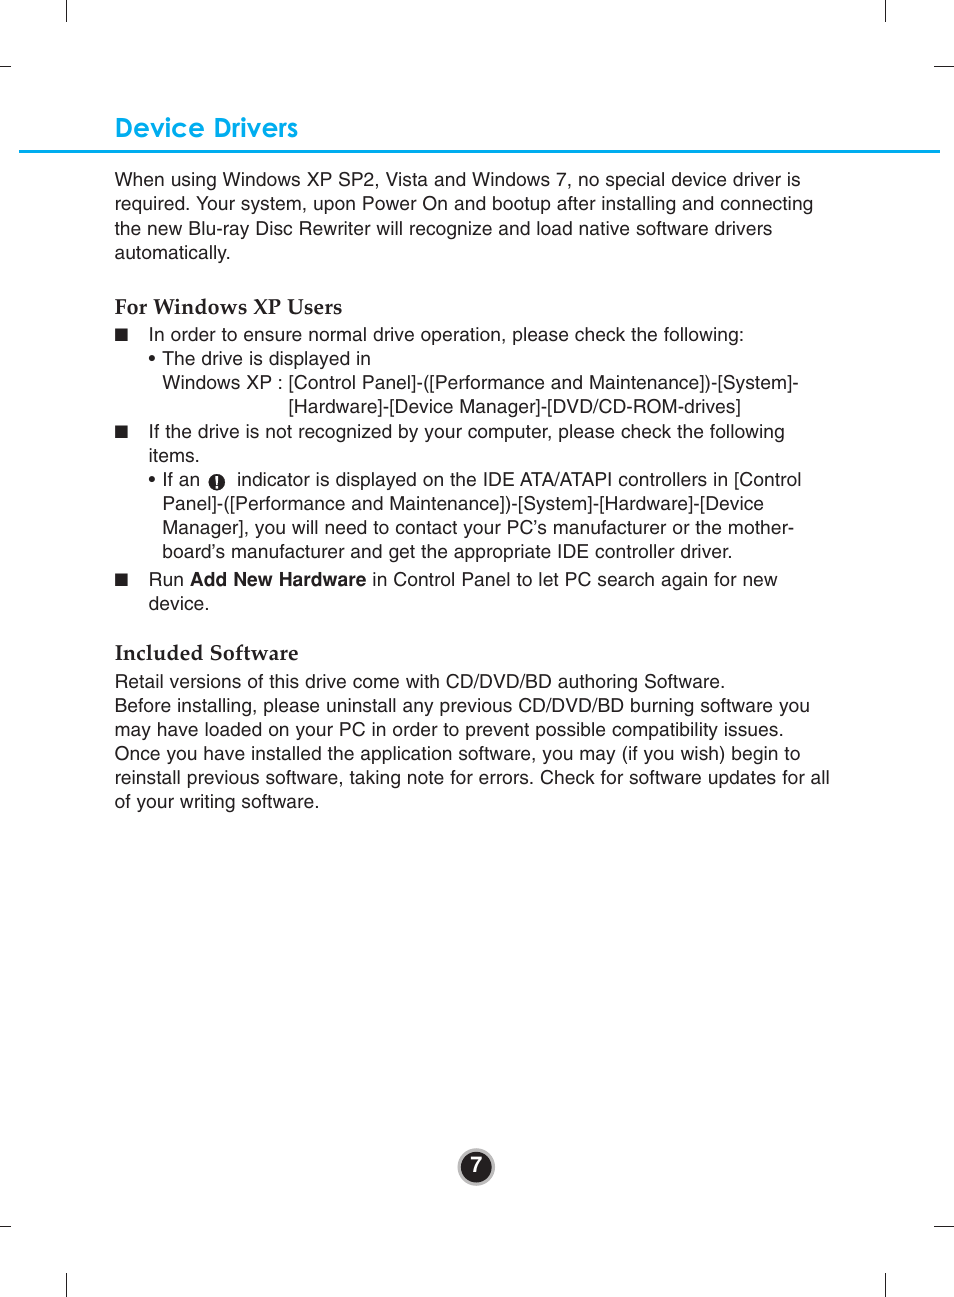 Device drivers | LG BH10LS30 User Manual | Page 10 / 15